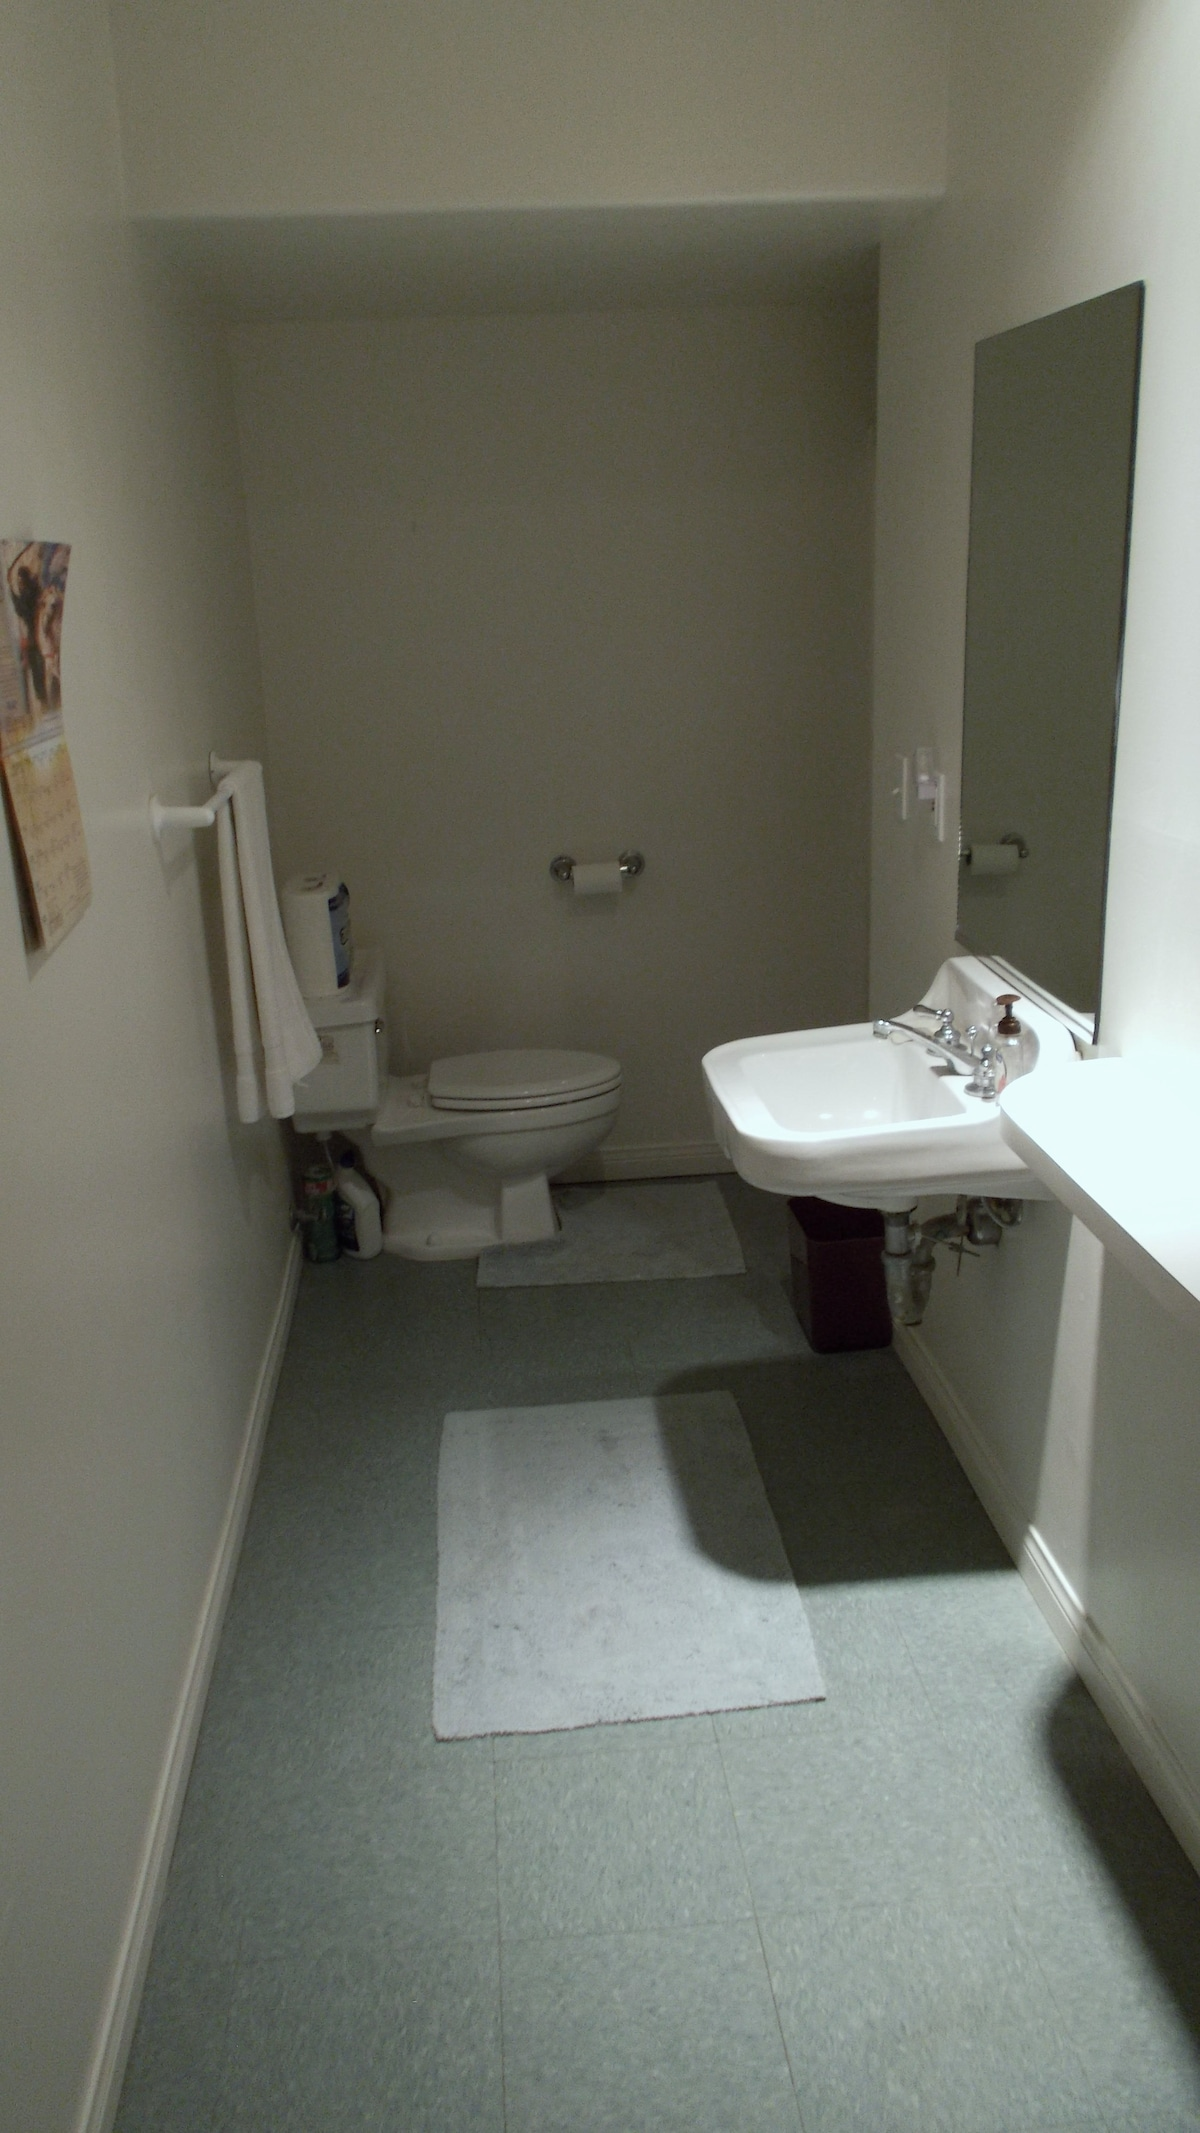 Just outside the bedroom is a private bathroom with a shower.